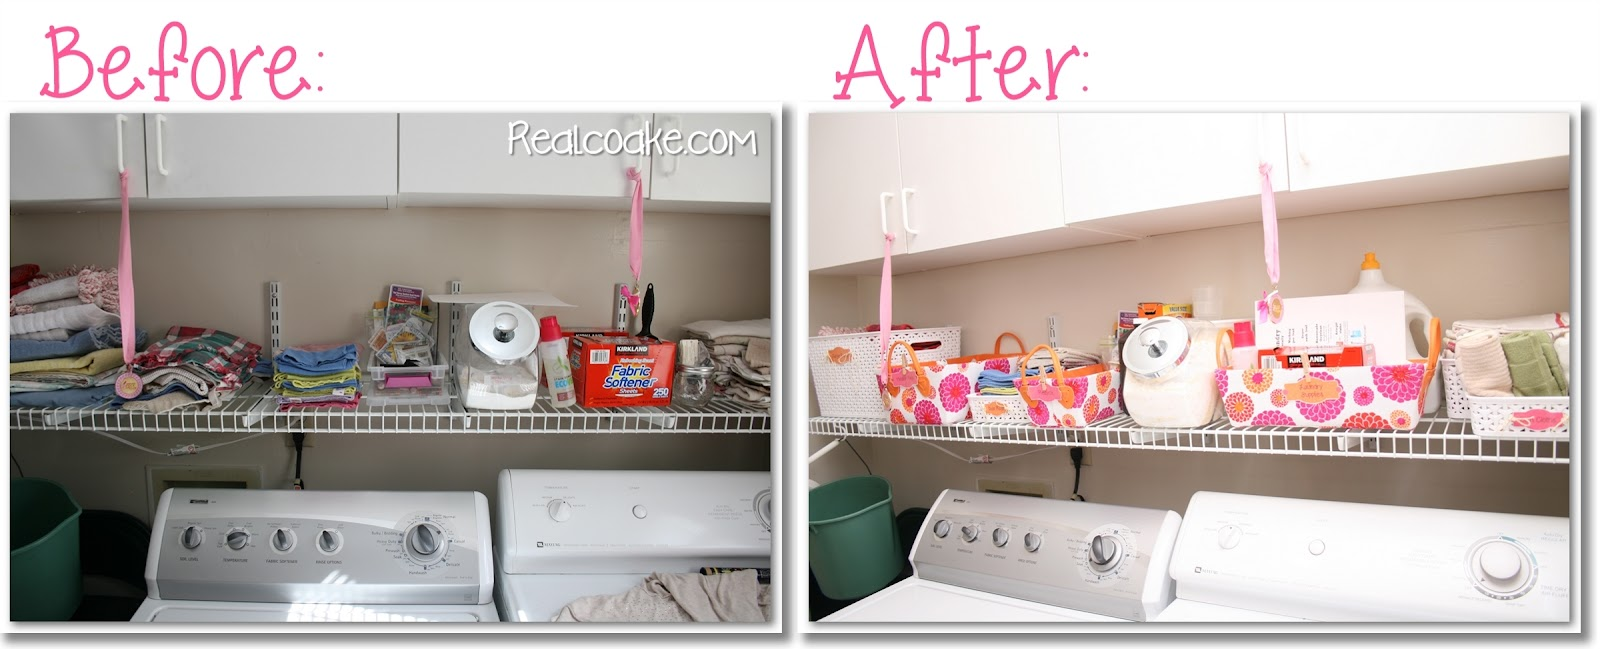 Laundry Room Ideas For Storage And Organization In A Pretty Inexpensive Way